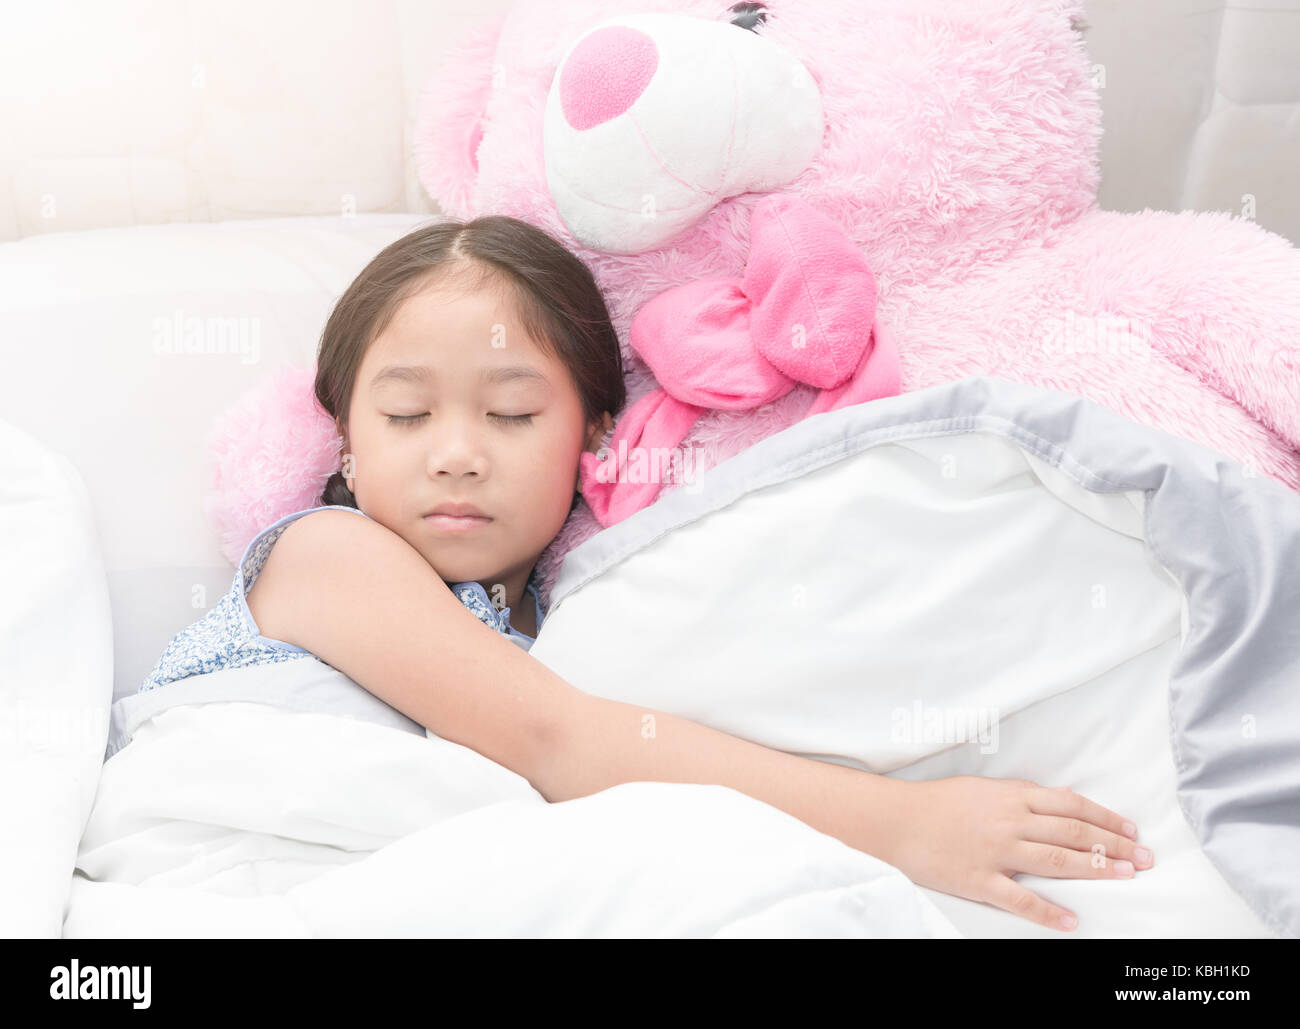 fbb66e788c8c cute asian little girl sleeping with big pink teddy bear on bed, healthy  concept